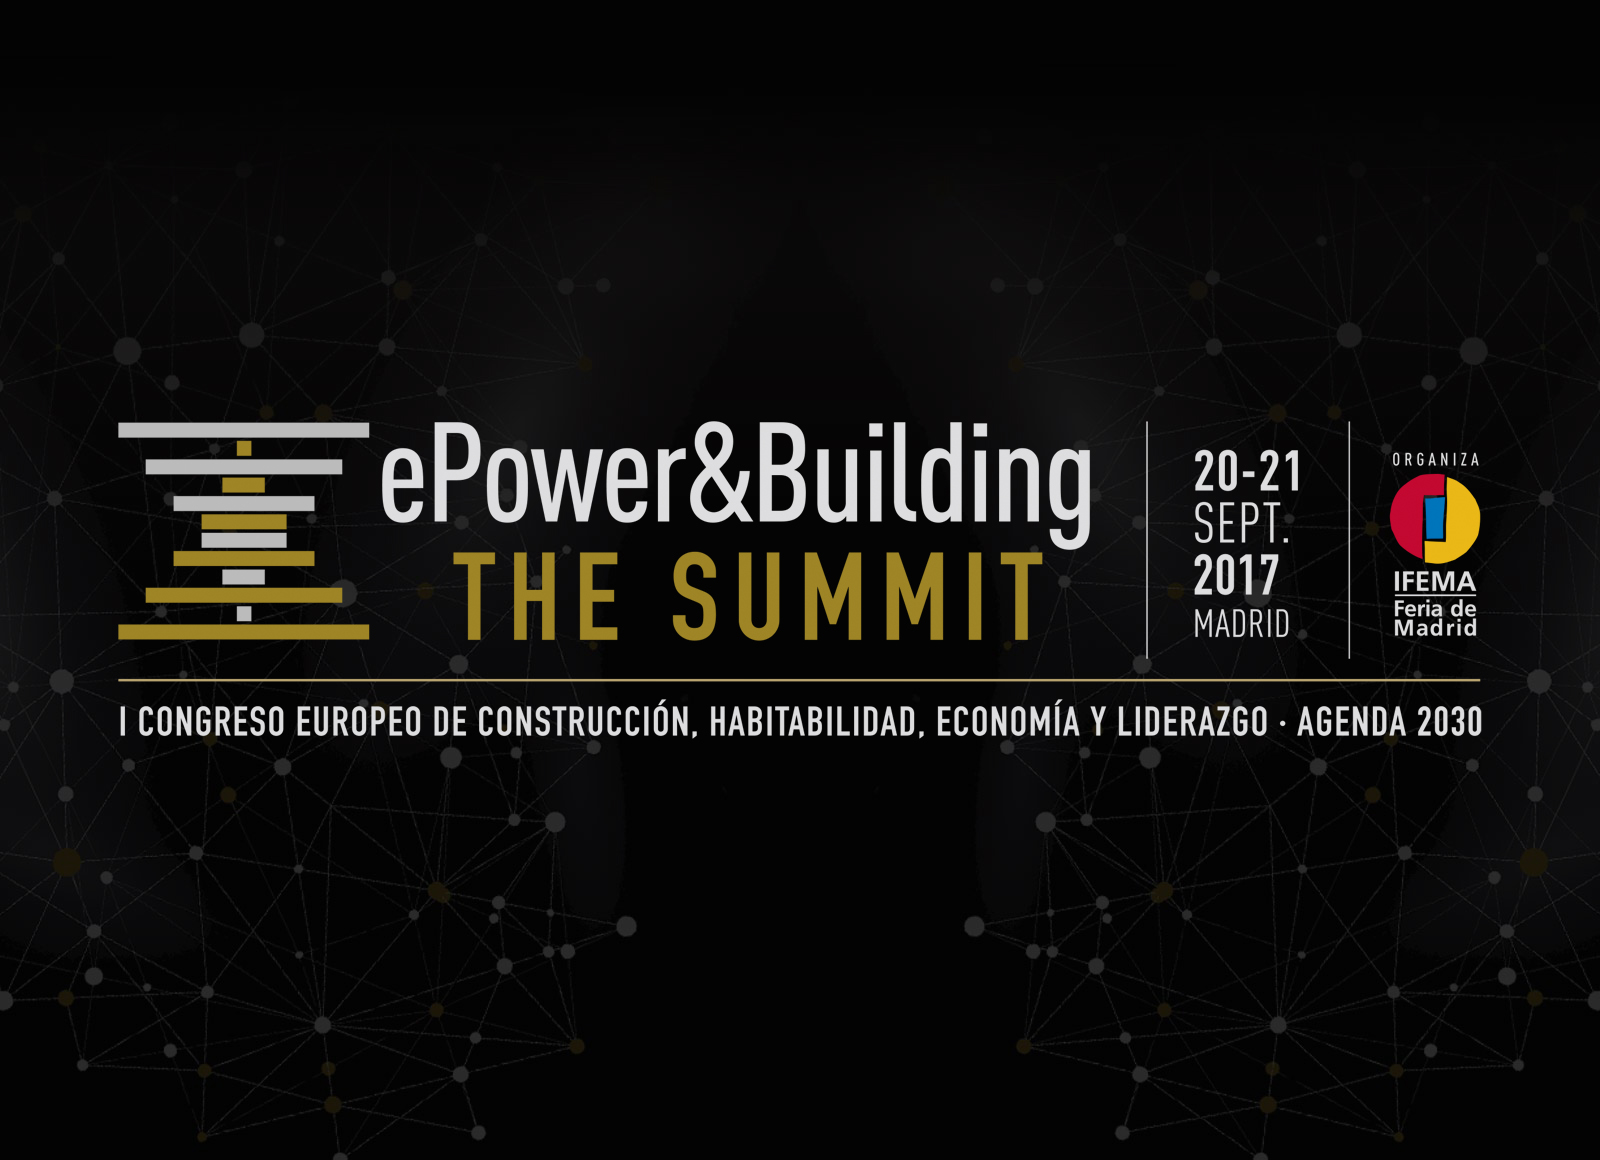 Onhaus estará presente en ePower&building The Summit